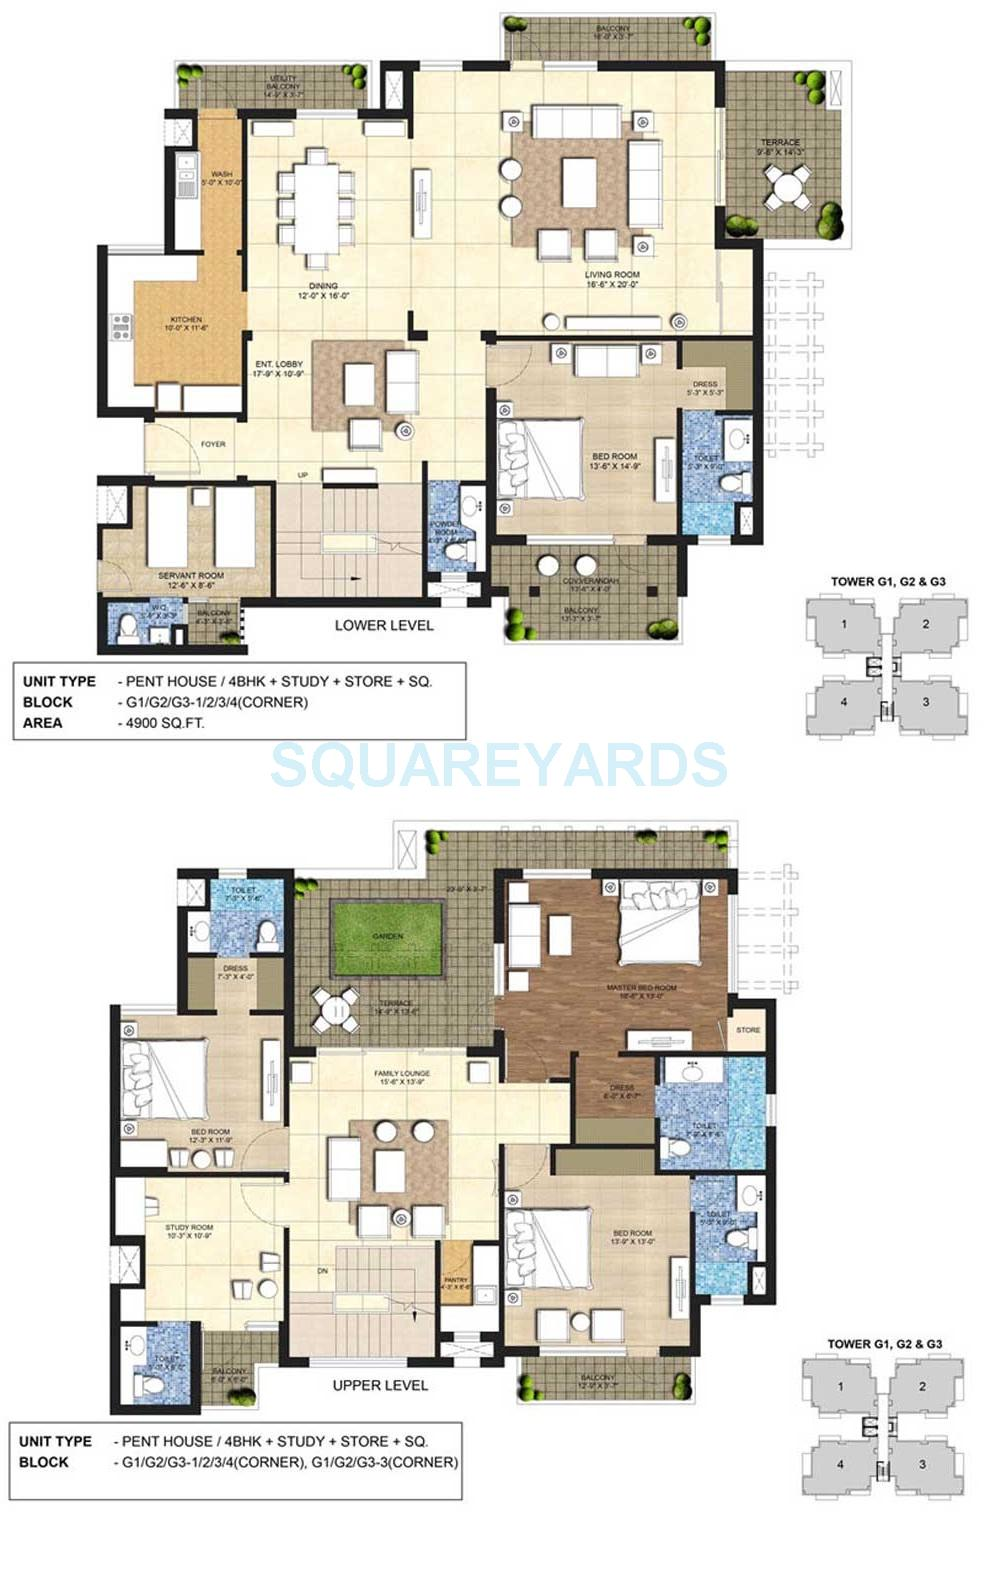 indiabulls centrum park penthouse 4bhk sq st 4900sqft 1